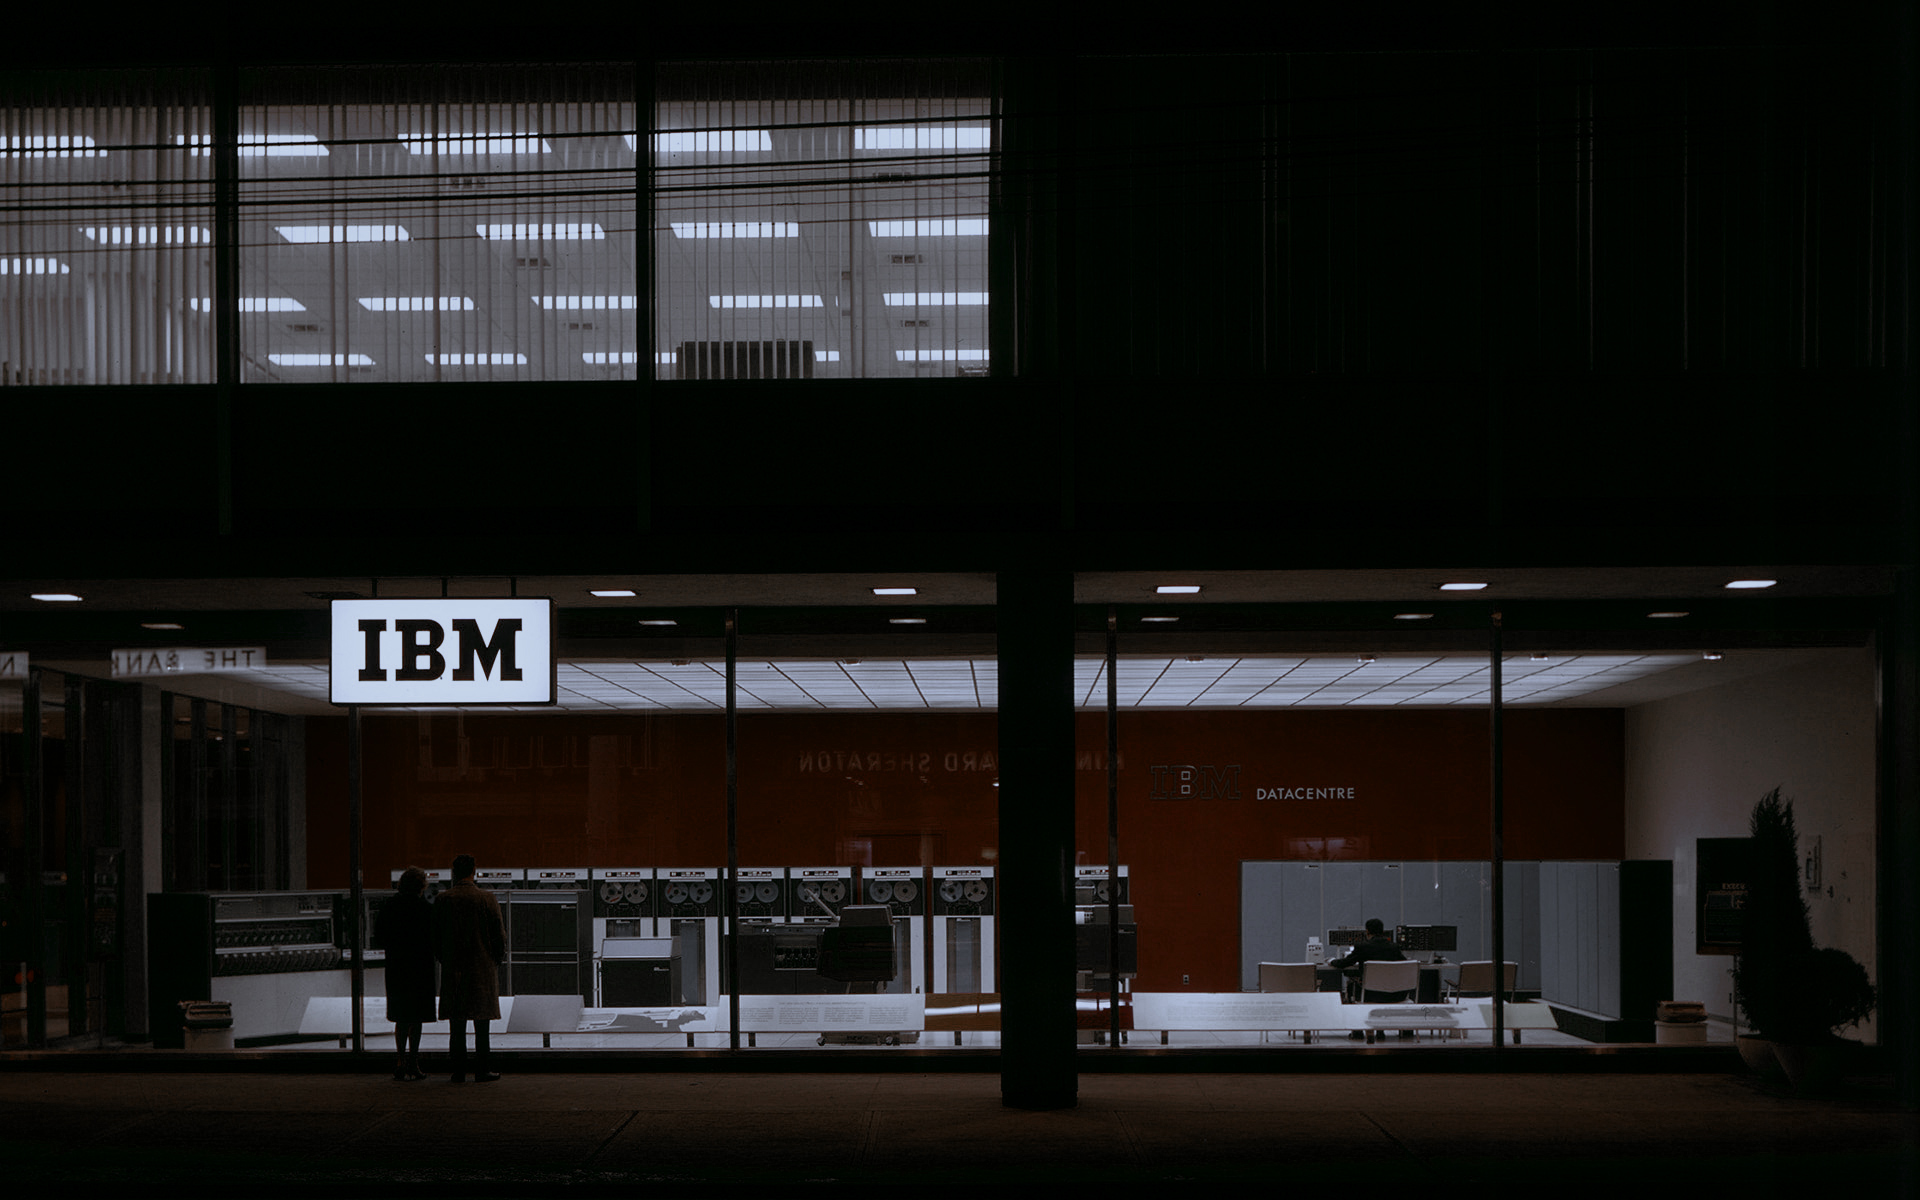 IBM Full HD Wallpaper And Background Image